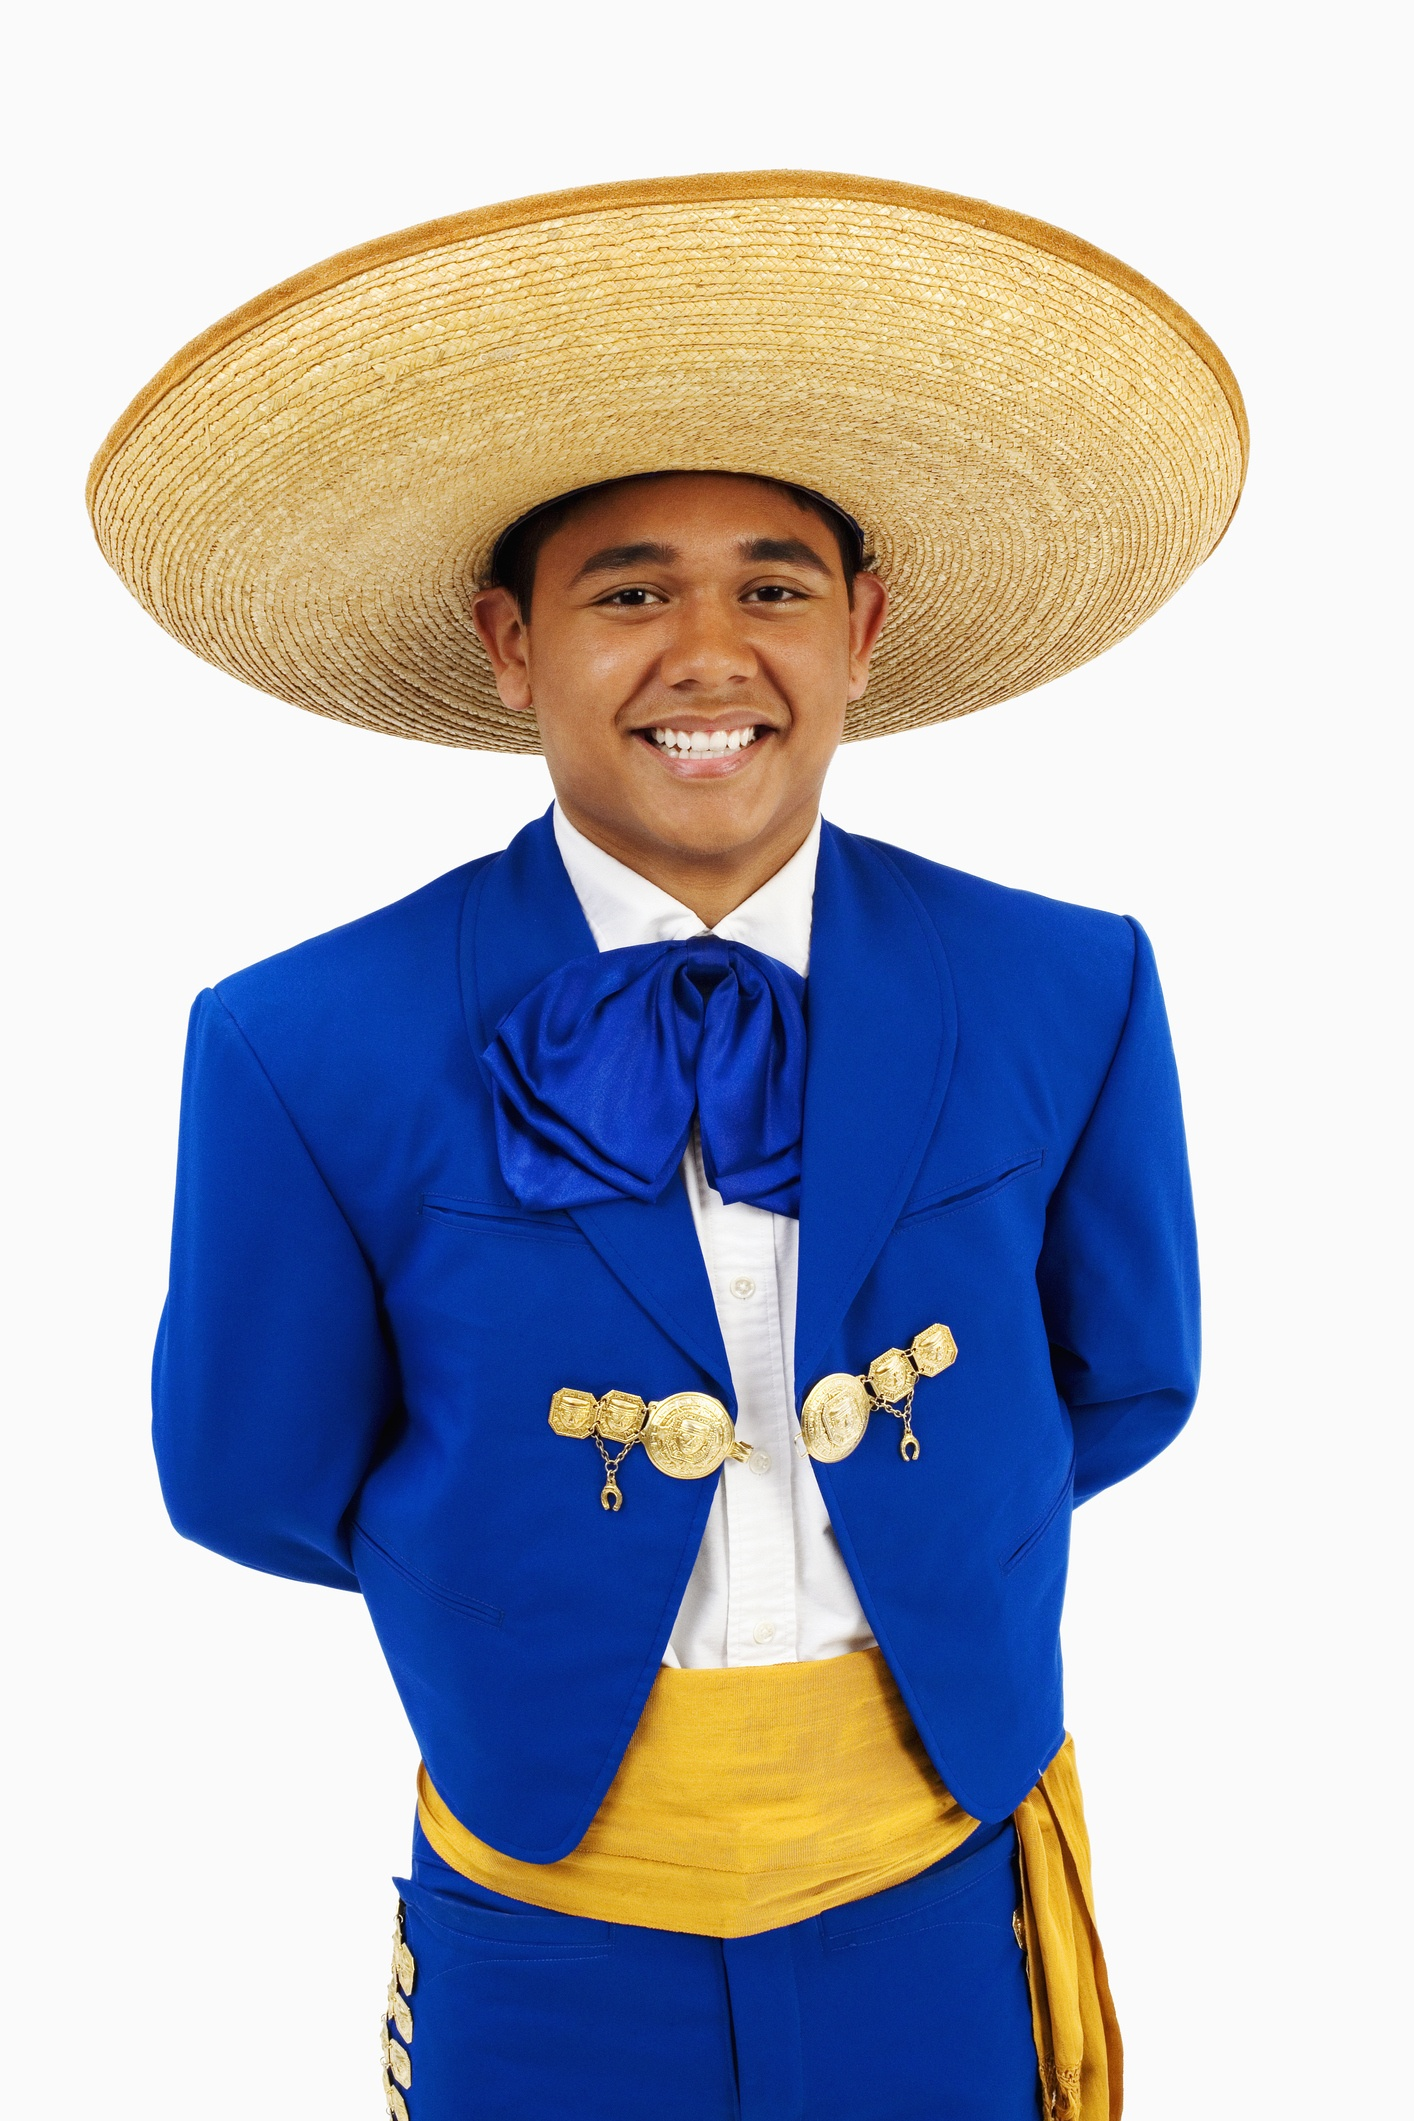 Young man in sombrero with hands behind back, portrait